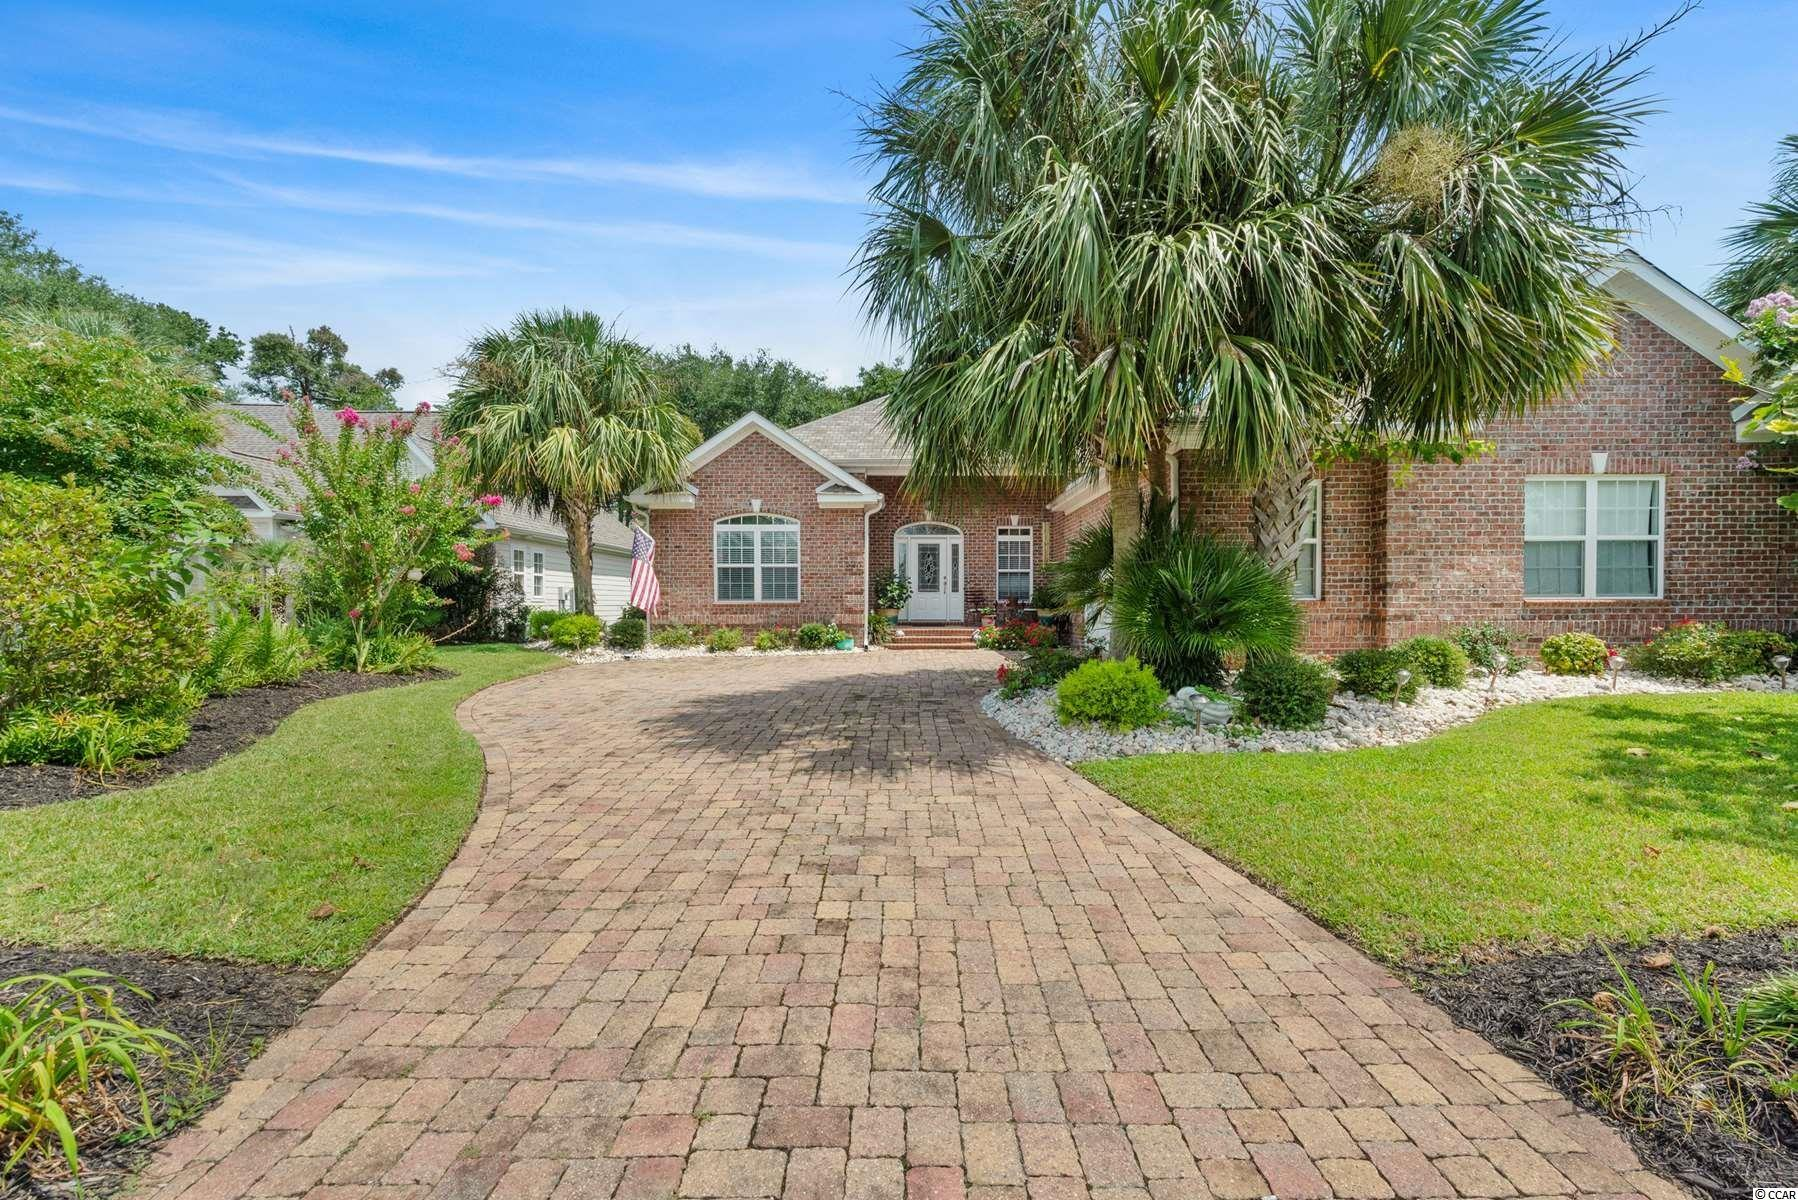 Welcome home to this beautiful 4 bedroom, 3 bathroom home in the highly sought after, gated community, Seaside Plantation in North Myrtle Beach. This home features a European Floor-plan, New roof & HVAC, Gas heat, Beautiful landscaping, and located SO close to the beach. The living room features tall ceilings with recessed lighting, a ceiling fan, luxurious Brazilian cherry hardwood flooring throughout, and a gas fireplace as a main focal point with gorgeous built-in shelving on either side. The kitchen is equipped with top of the line stainless steel appliances, granite  countertops, a large work island, a spacious pantry, with the perfect breakfast nook. Enjoy family dinners in the formal dining room, and spend your afternoons relaxing in the beautifully landscaped backyard. Each bedroom includes plenty of closet space, a ceiling fan, and easy access to a bathroom, while two of the bedrooms share a jack and Jill bathroom. The master offers tray ceilings, access to the screened in porch/Carolina room, room for a seating area, and a private master bath with updated double sink vanities, oversized whirlpool tub, and an upgraded walk in shower. The Carolina room can be accessed from 3 points; the living room, kitchen, and master, making it easily accessible from all areas of the home. This home also features a new HVAC unit in fall of 2020, a beach shower in the garage, a tankless hot water heater, 4 additional gas hook ups, unbelievable storage closets, an irrigation system, and more! Seaside Plantation is the perfect golf cart neighborhood, situated close to all of the Grand Strand's finest dining, shopping, golf, and entertainment attractions, and less than 2 blocks to the beach. You won't want to miss this. Schedule your showing today!